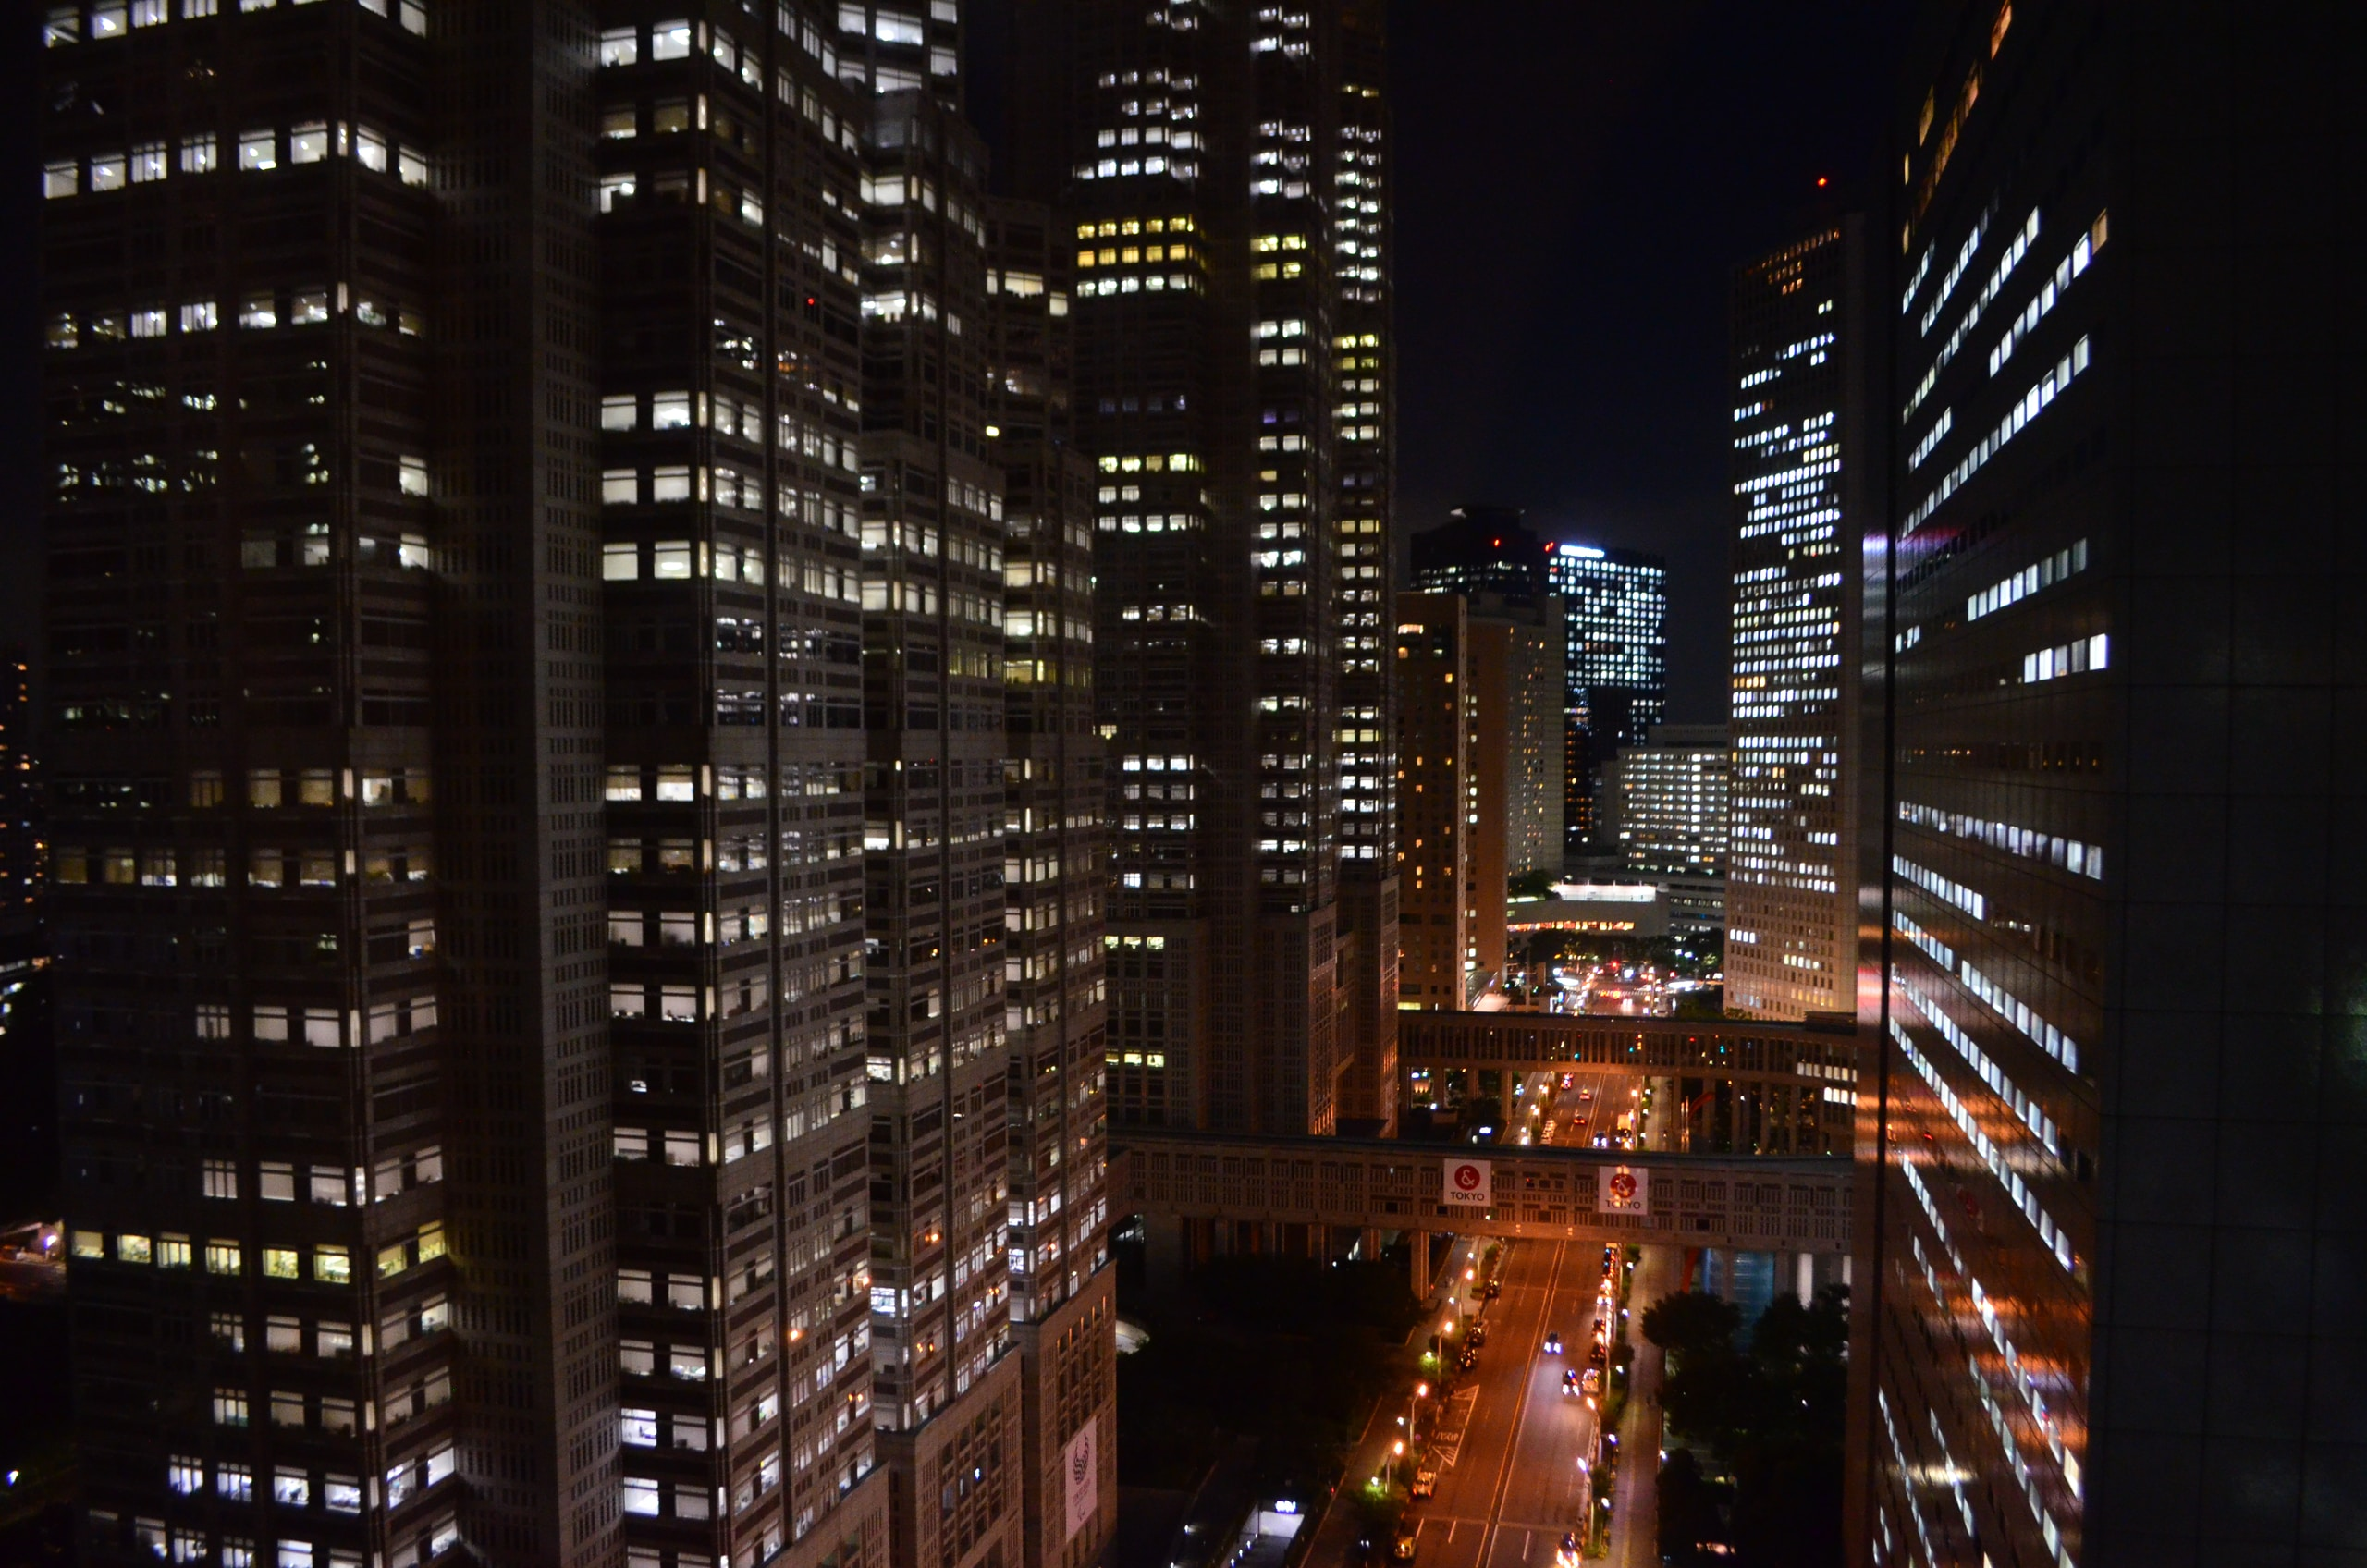 landscape of city buildings during night